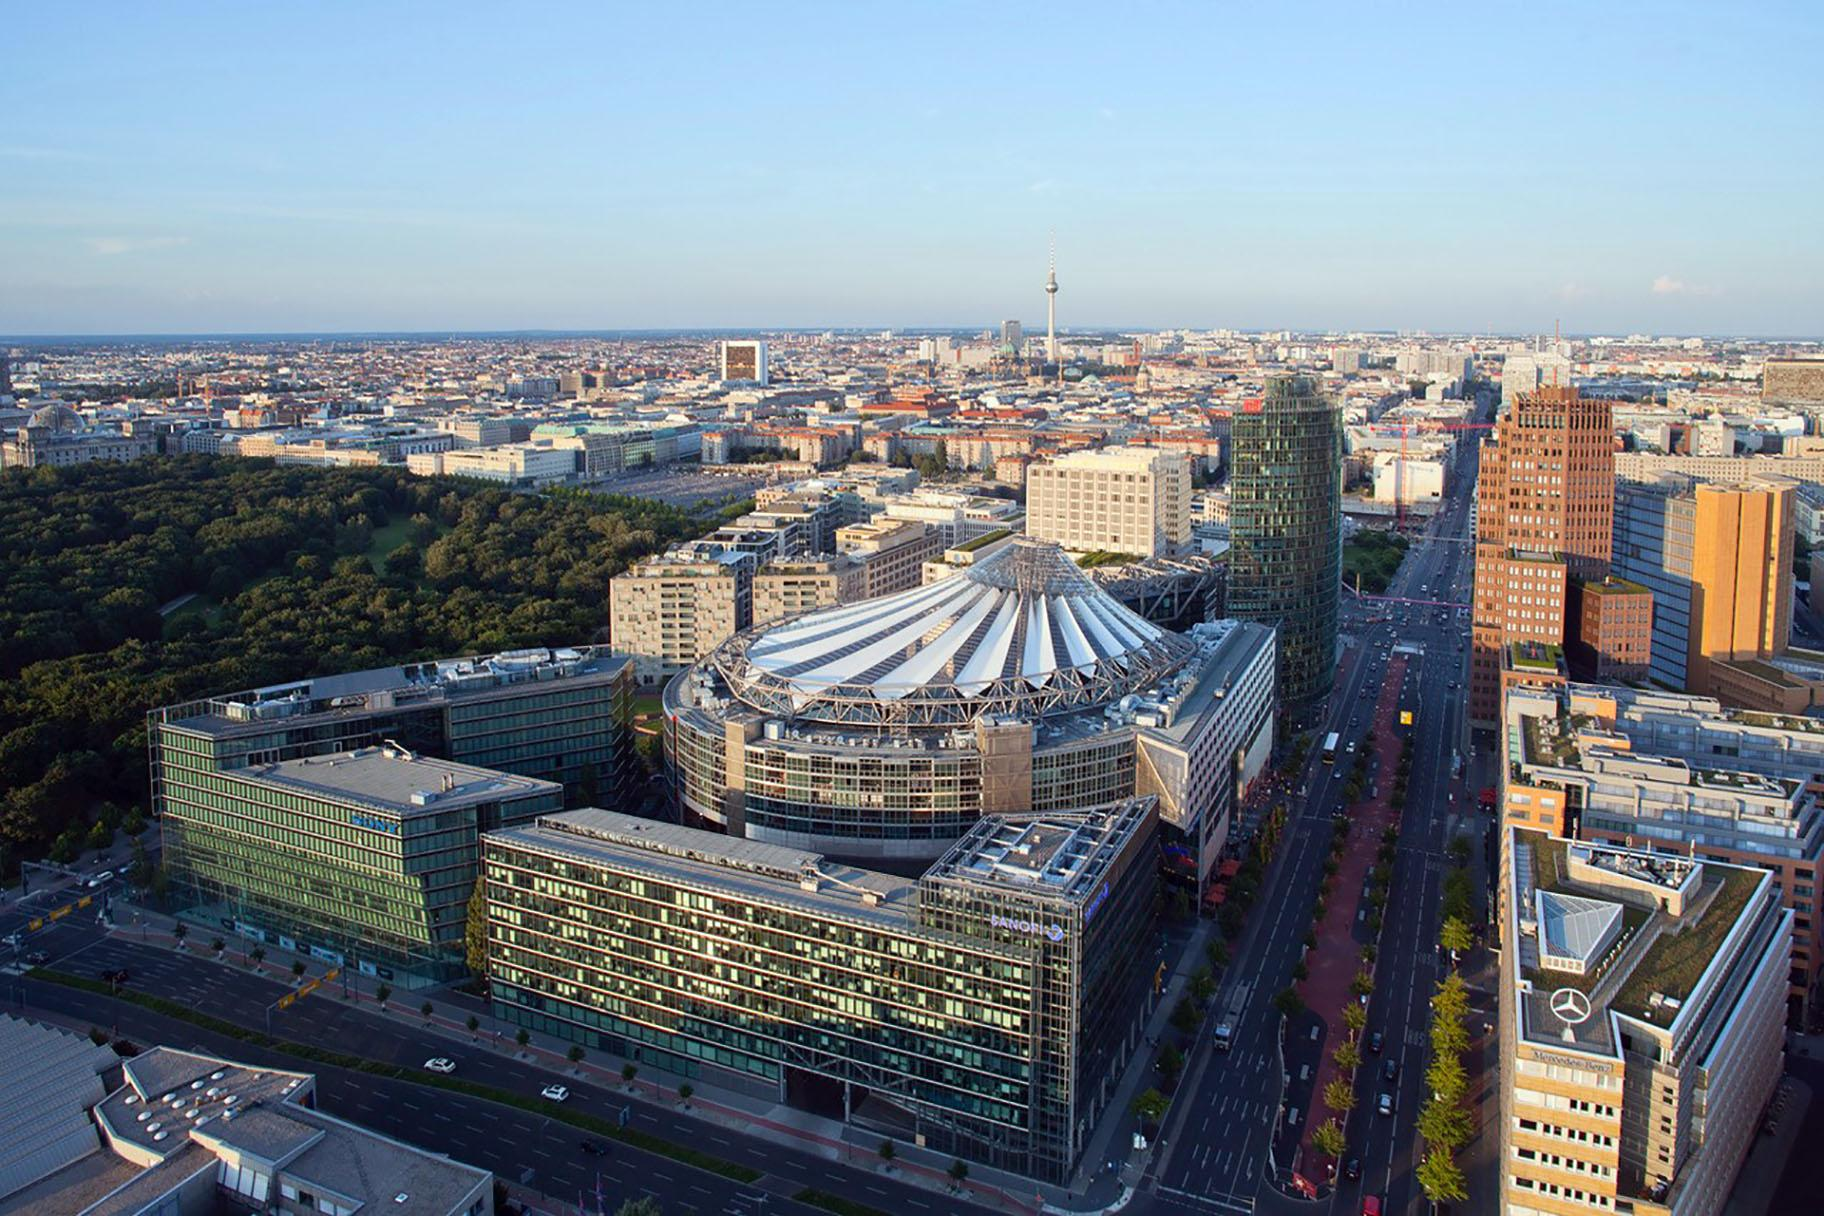 The SONY Center in Berlin, might remind viewers of the Thompson Center with its soaring atrium and spaceship-like exterior. (Courtesy Rainer Viertlboeck)